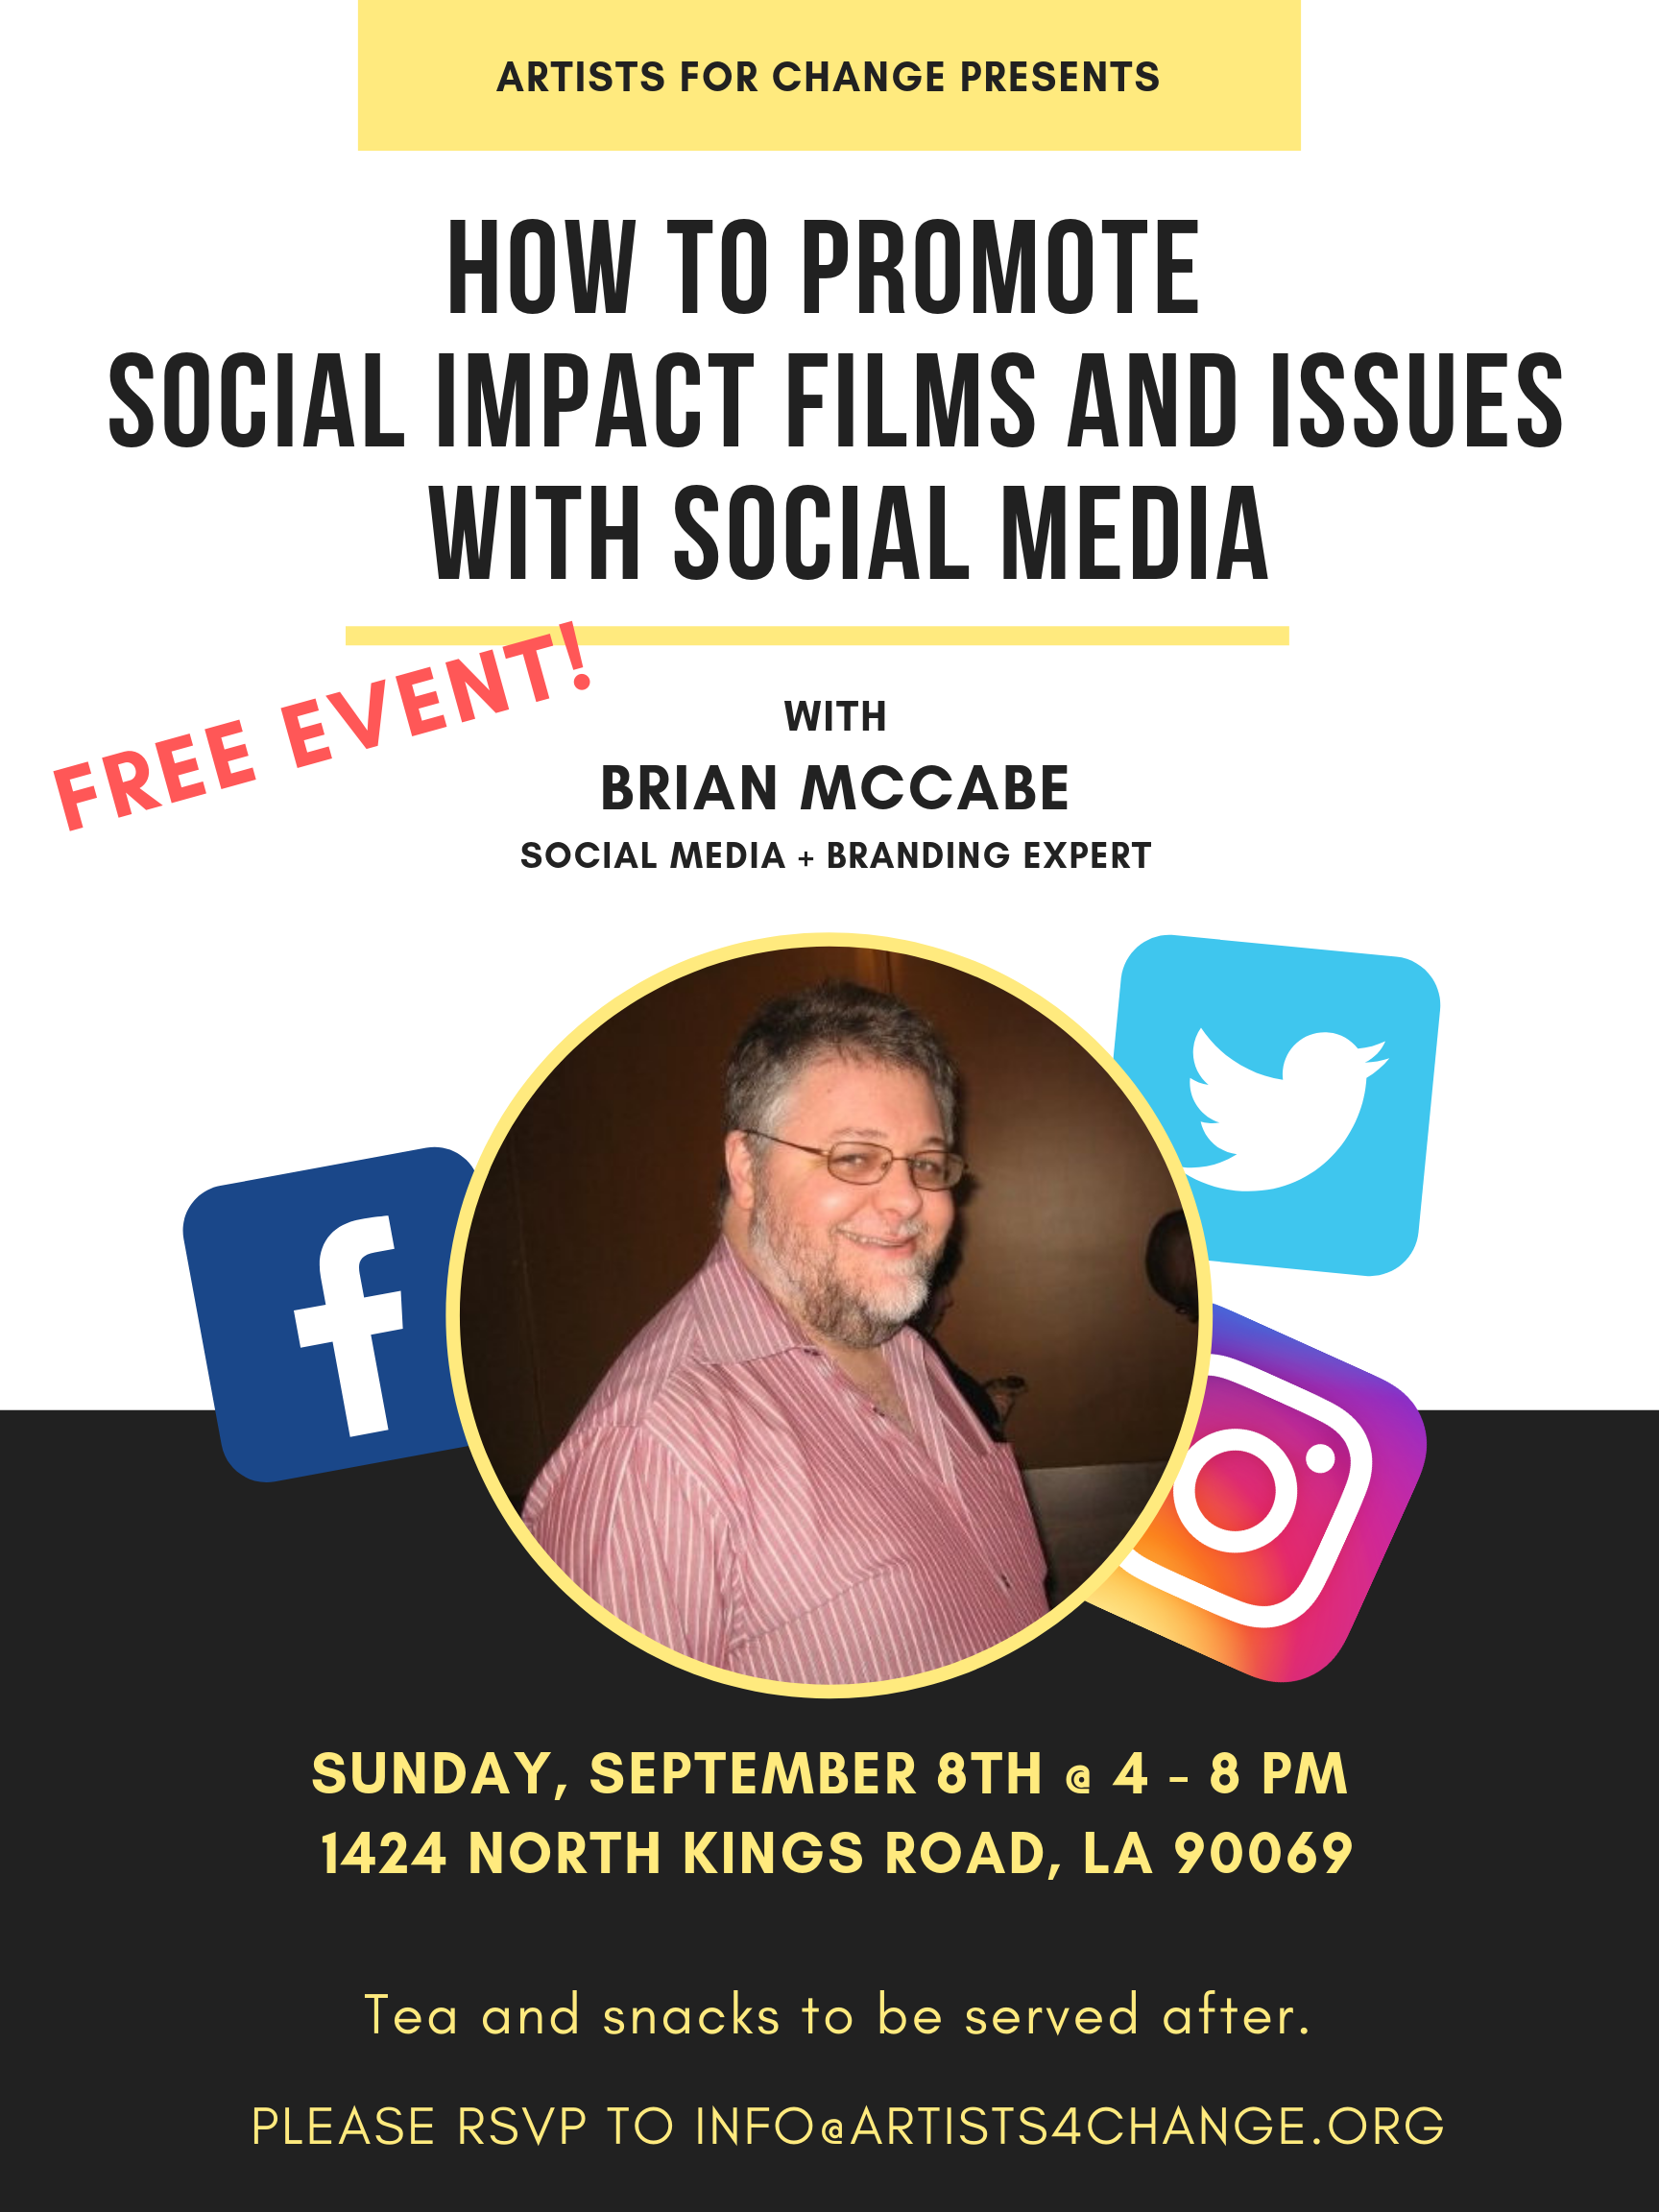 HOW TO PROMOTE SOCIAL IMPACT FILMS AND ISSUES WITH SOCIAL MEDIA